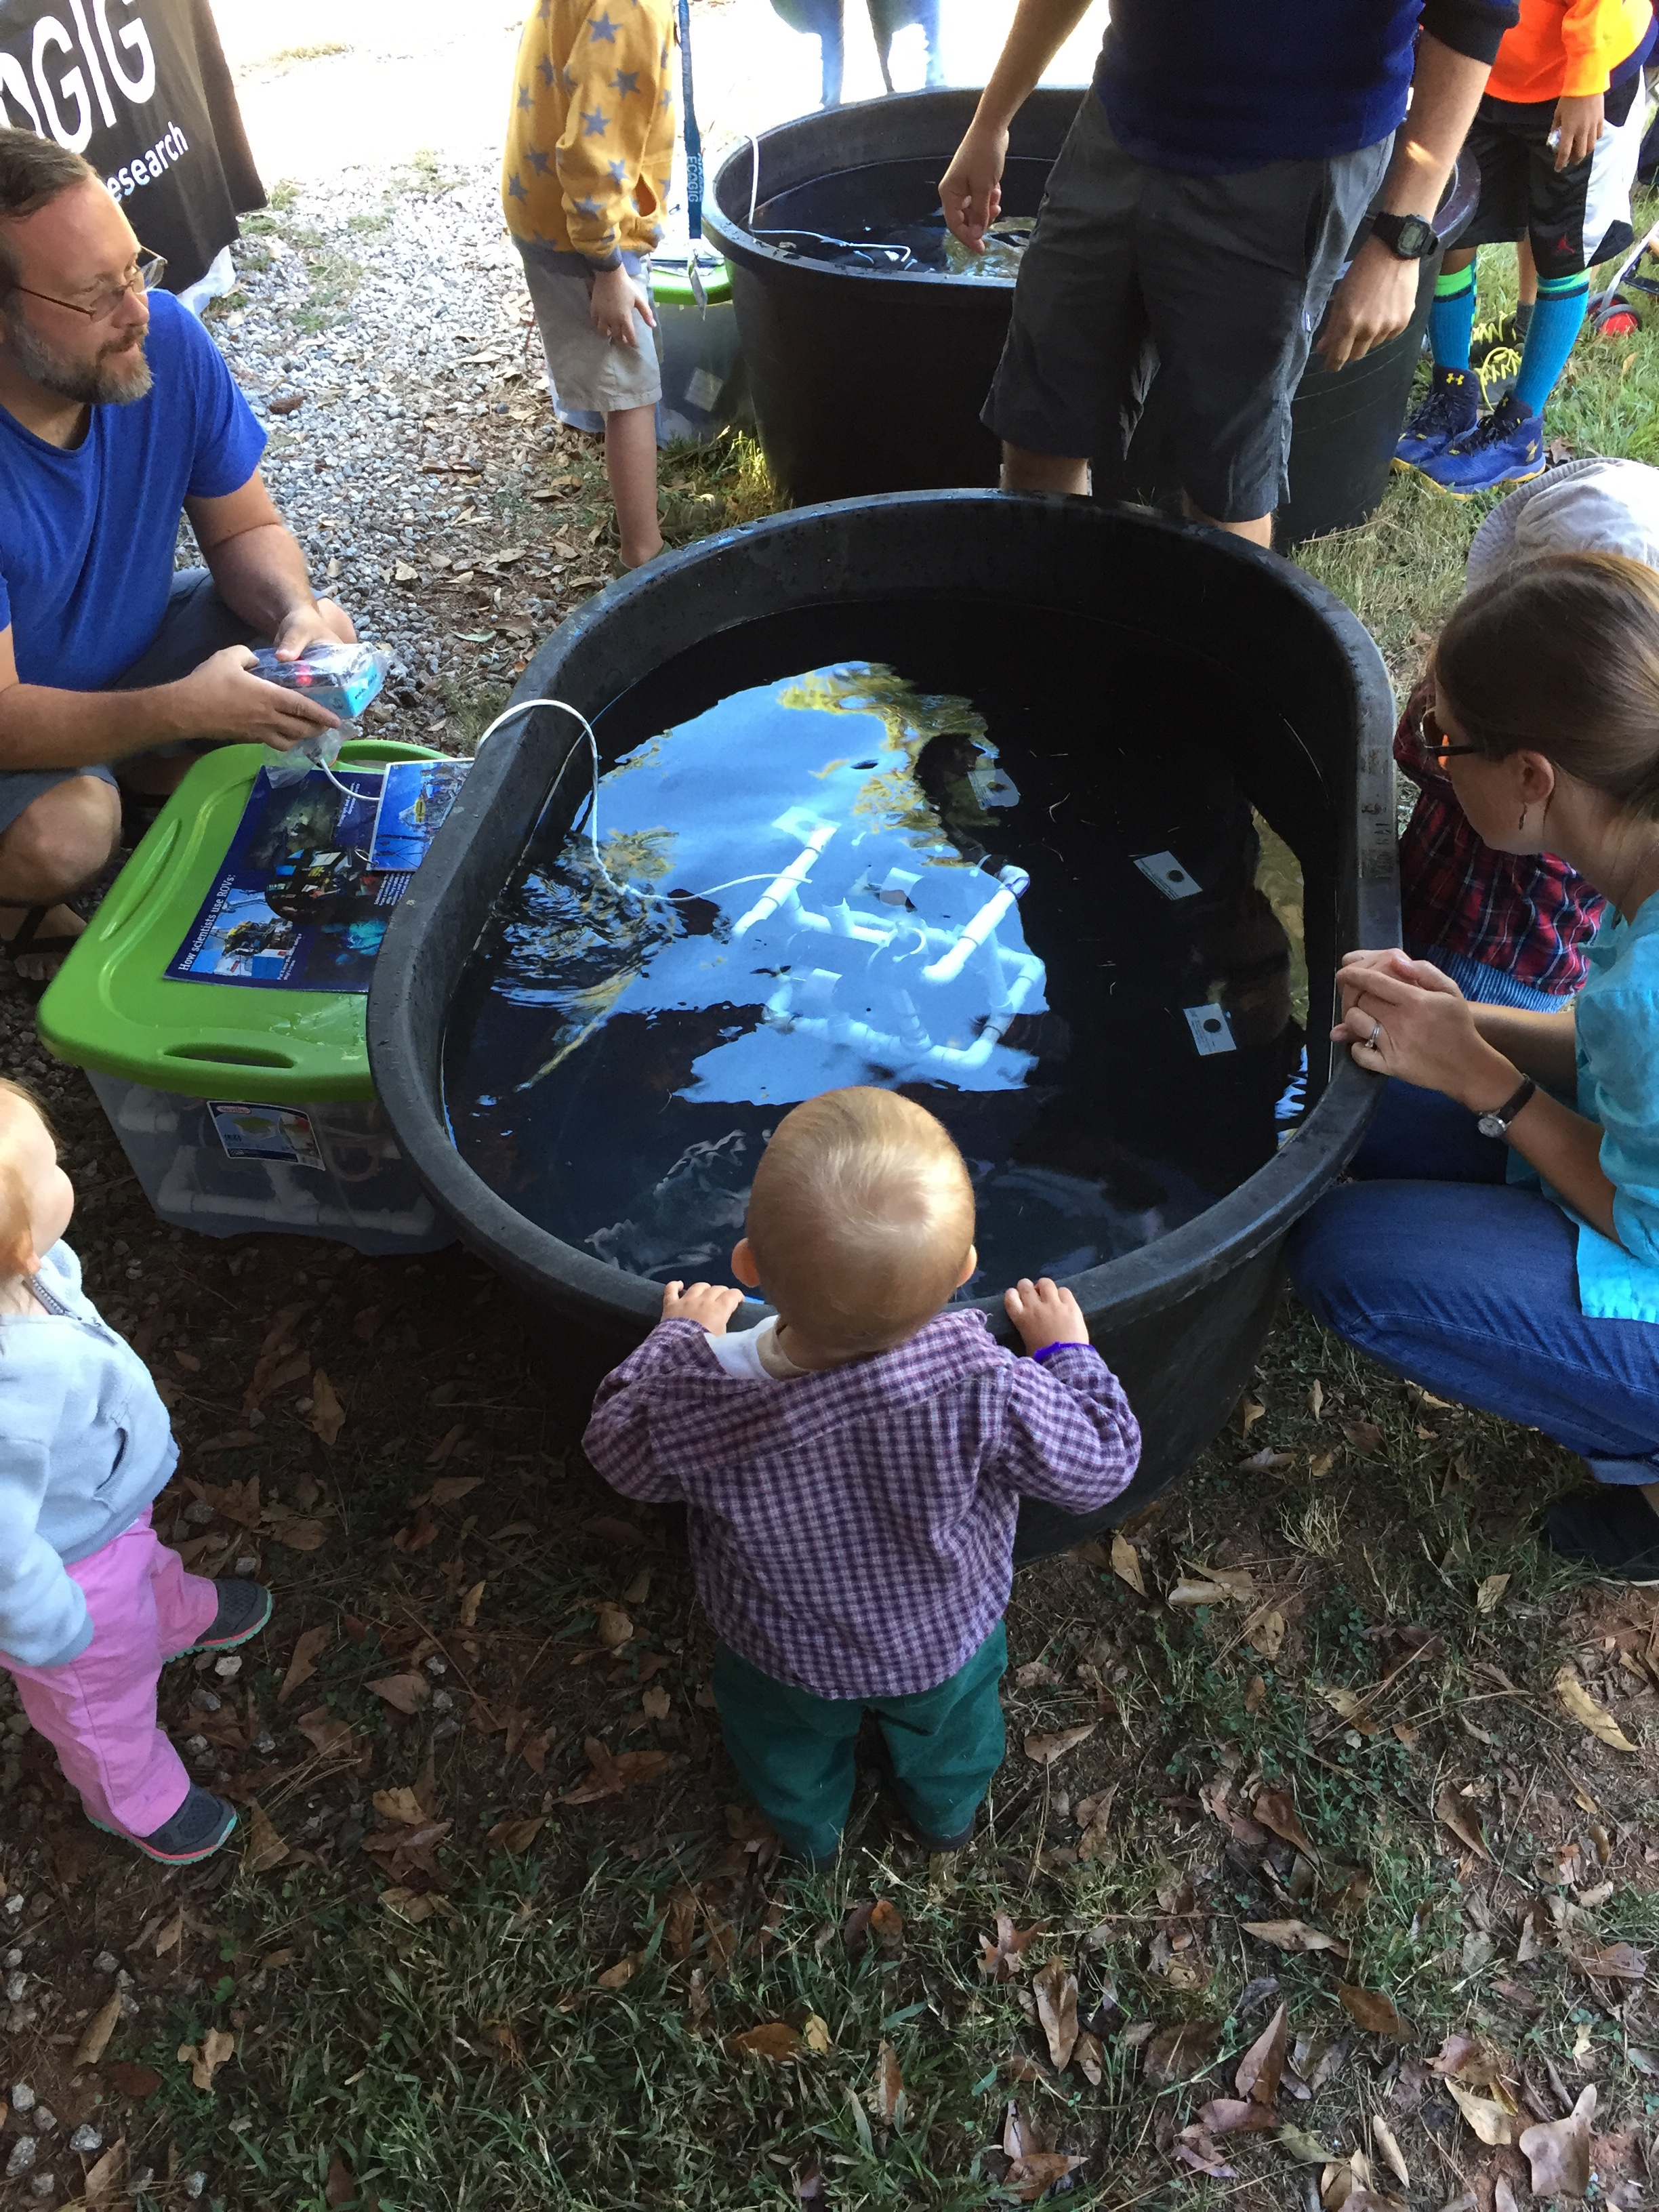 <div style='color:#000000;'><br /><br /><h2>2016 Athens Montessori Fall Festival. ROVs are for kids of all ages!</h2>(c) ECOGIG</div>